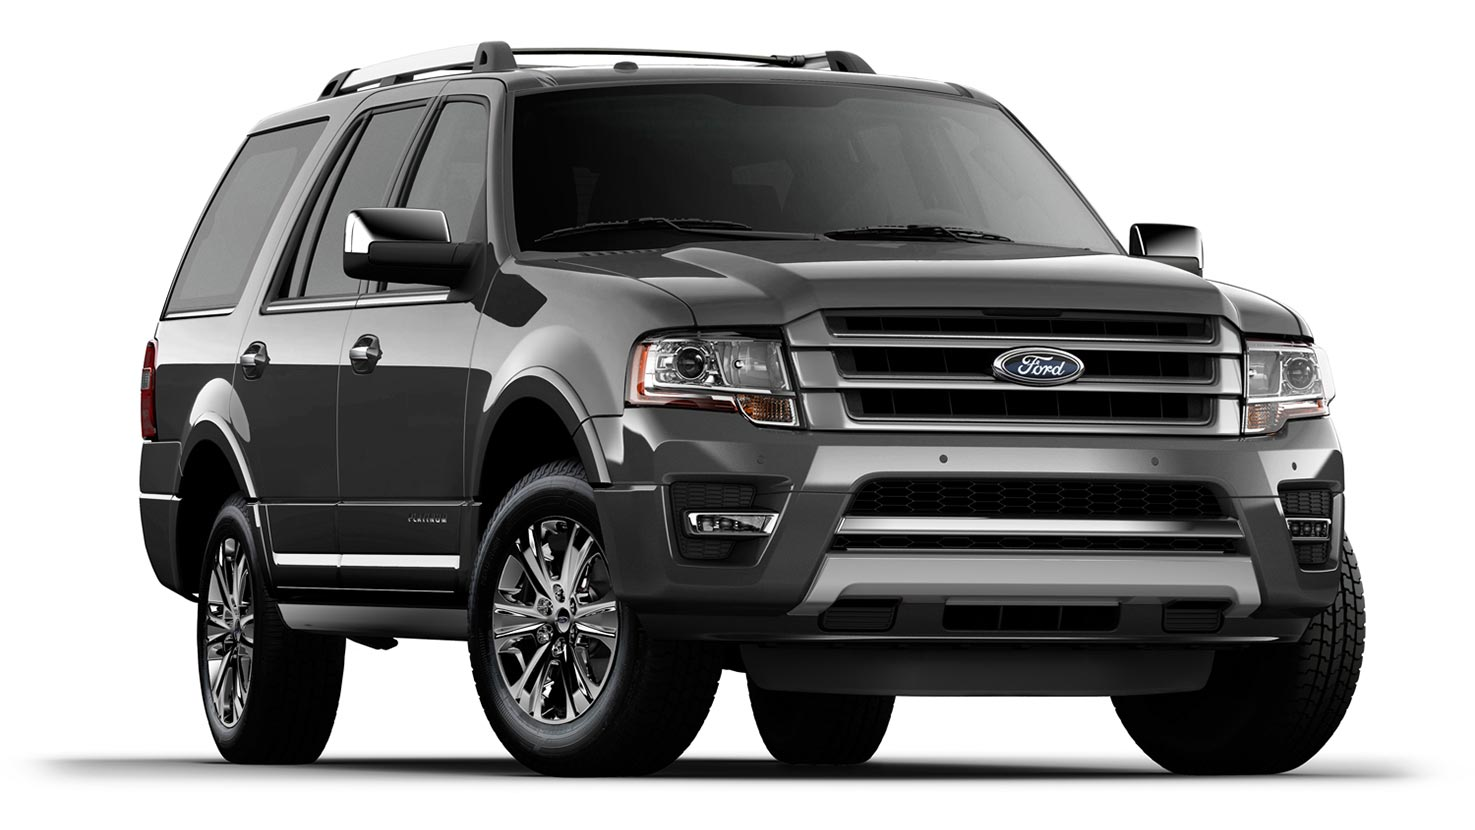 2014 ford expedition 1 2014 ford expedition 1